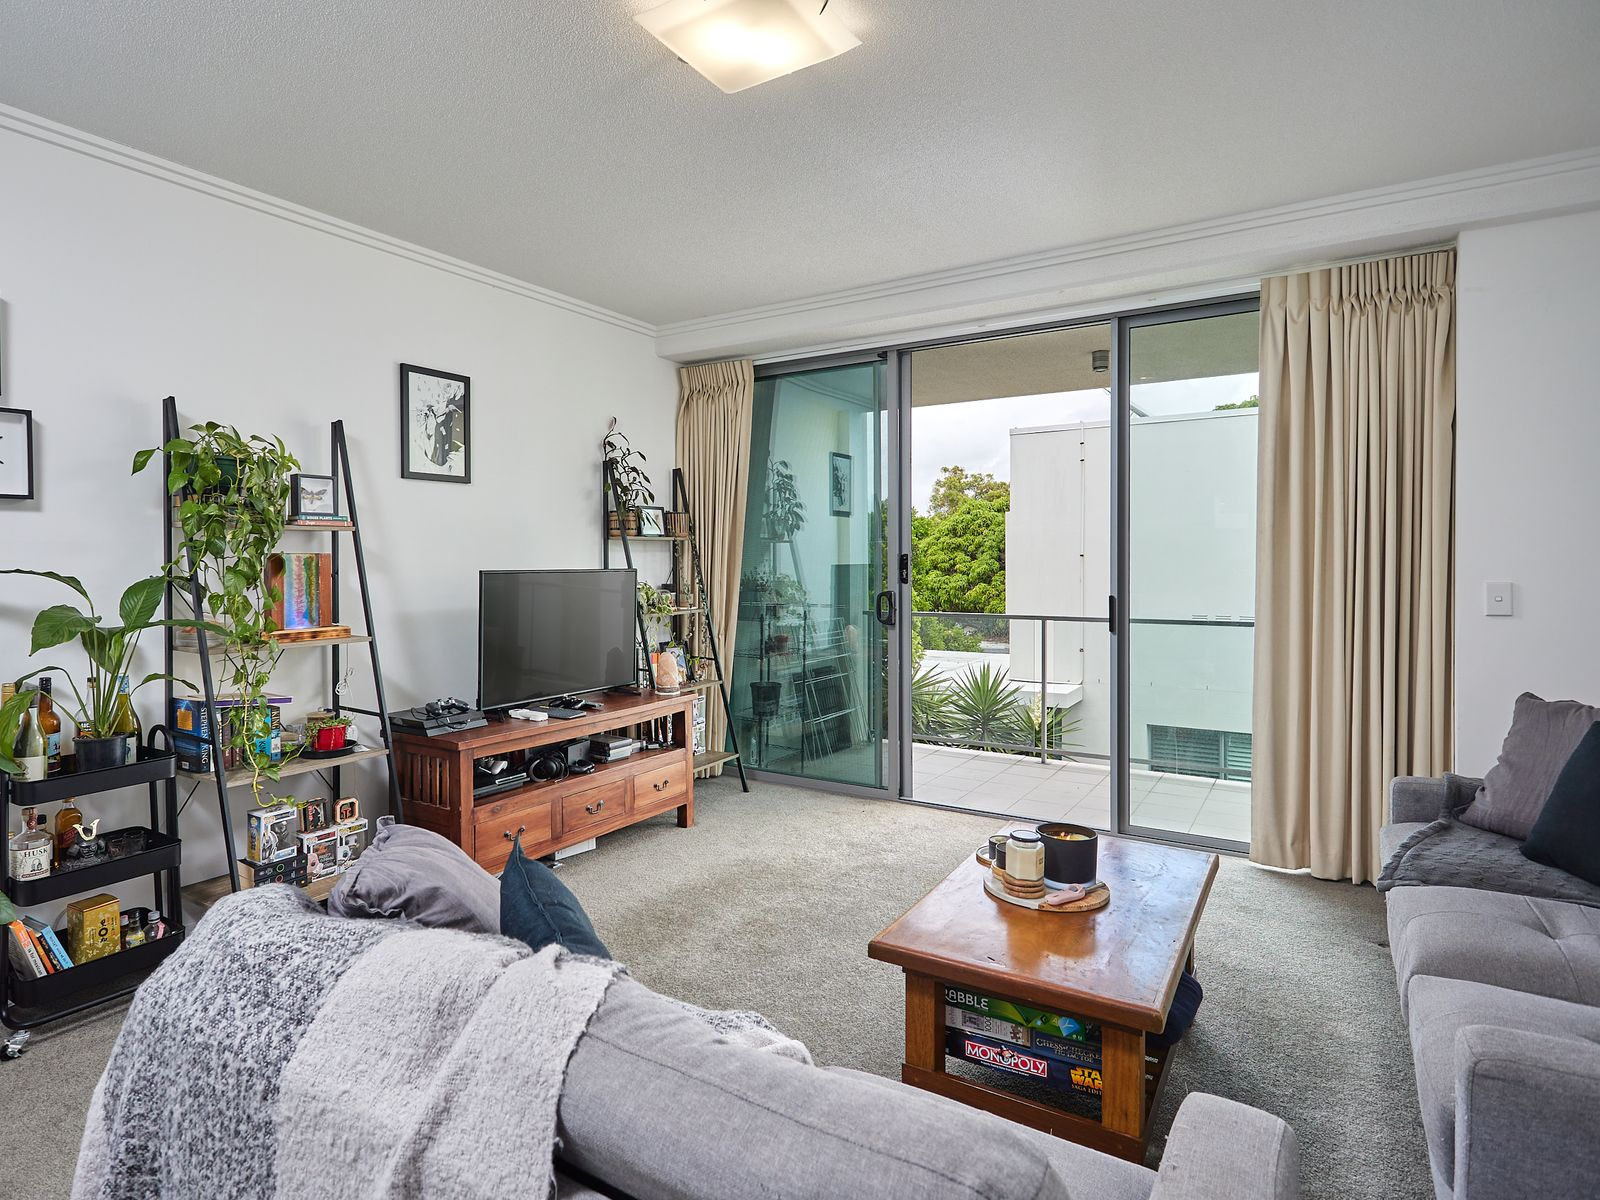 29/2 Gaven Crescent, Mermaid Beach, QLD 4218